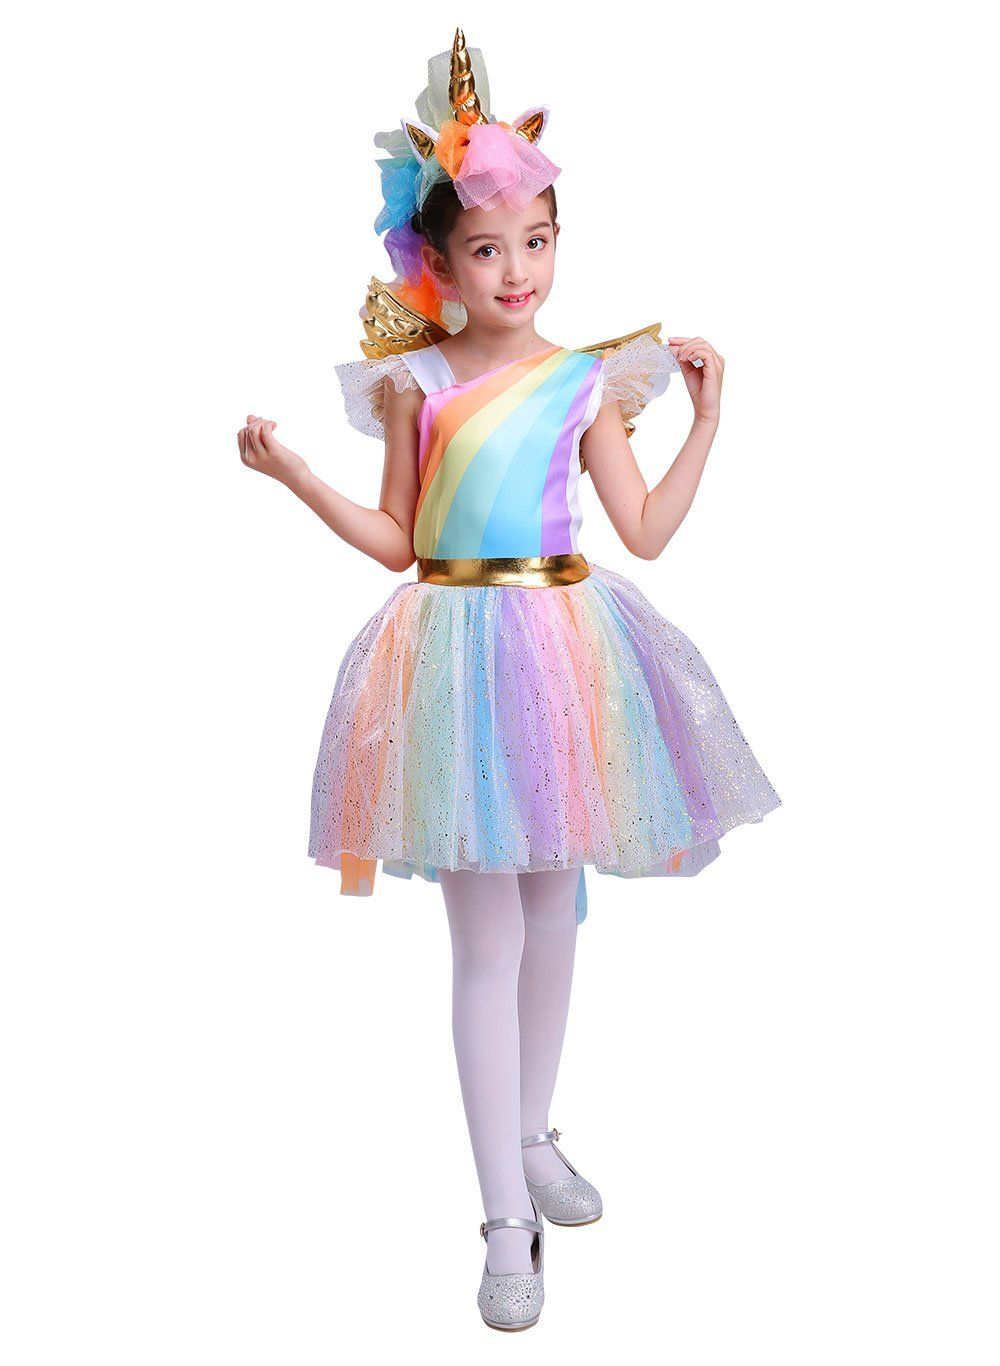 aafab1531a40 Lady Costumes for Halloween Children   Seasons Direct Halloween ...